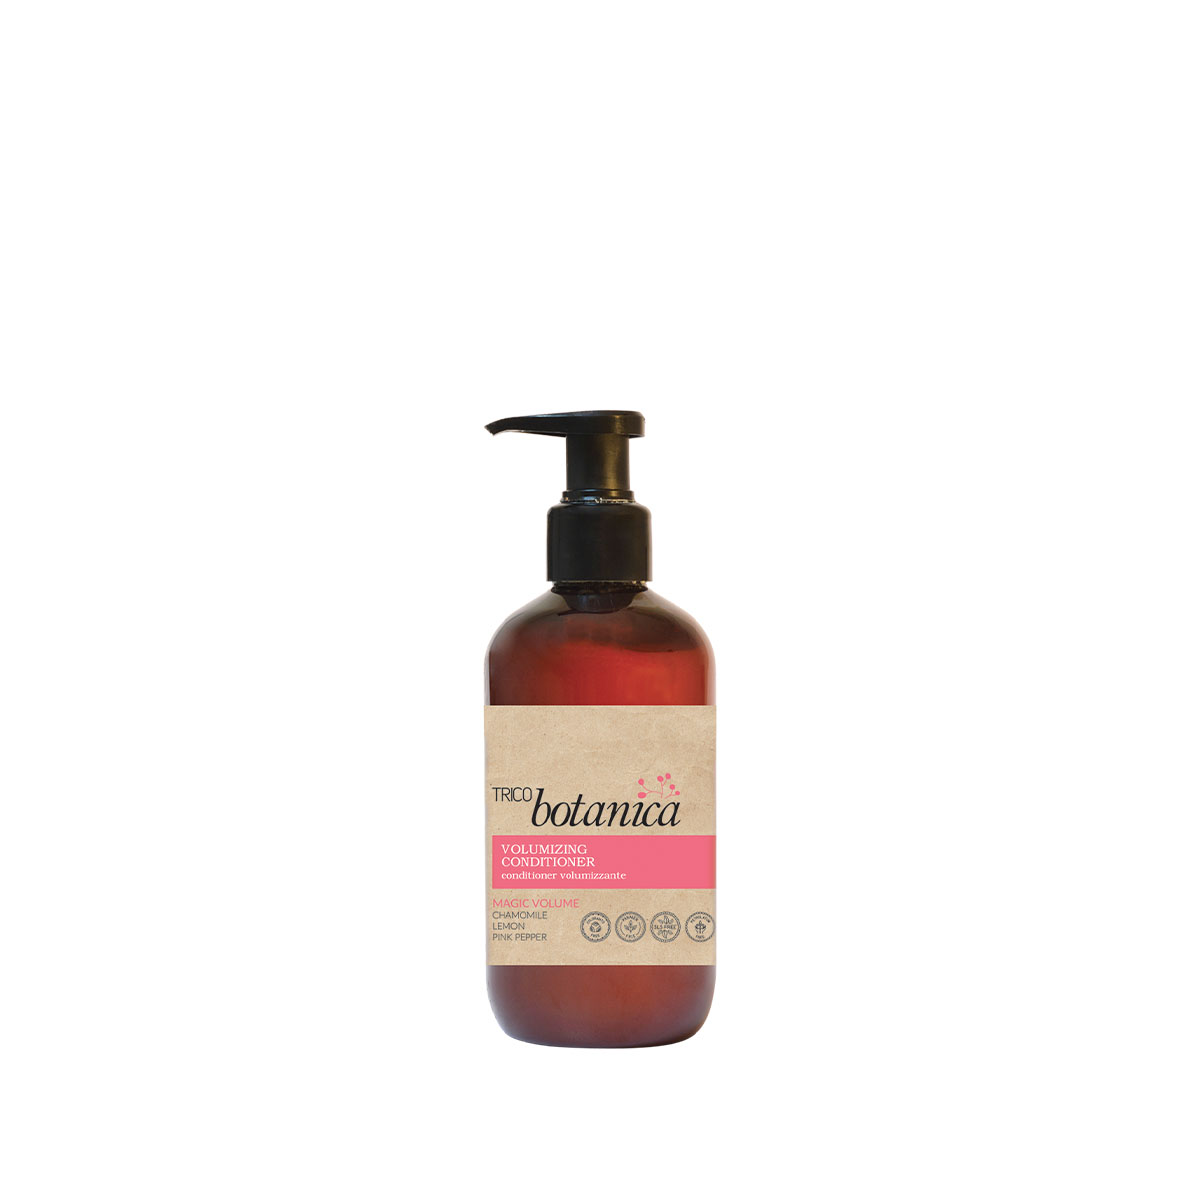 Tricobotanica Volumizing Conditioner 250